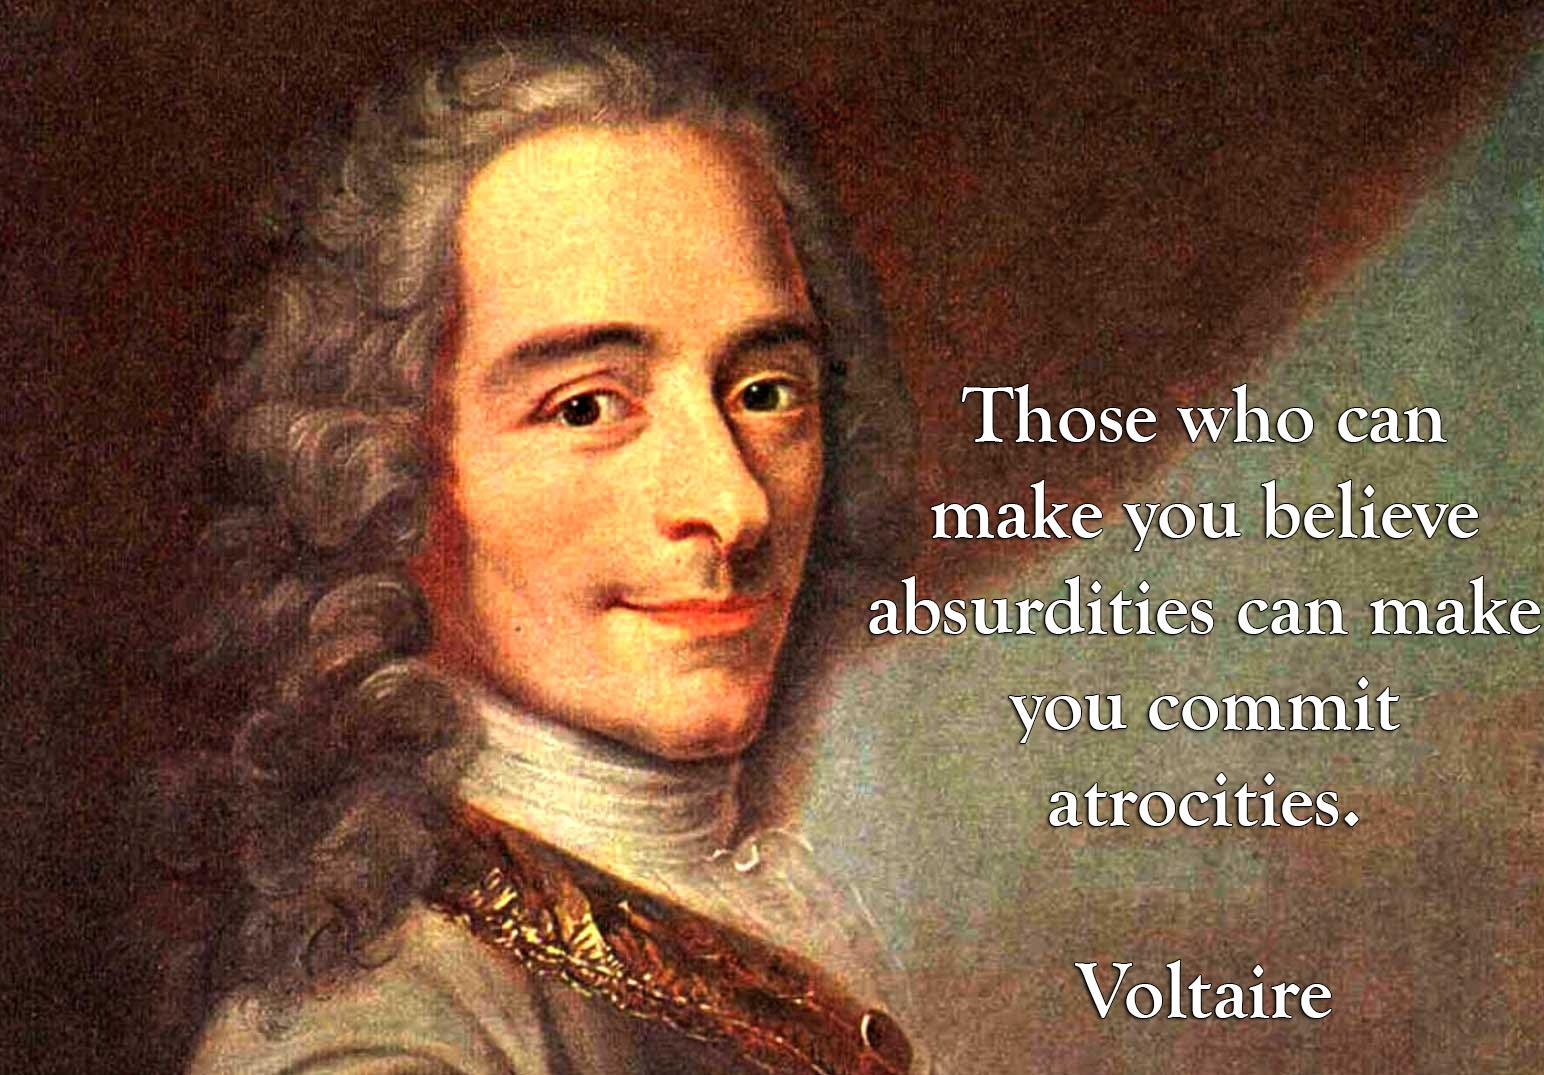 Those who can make you believe absurdities can make you commit atrocities. – Voltaire [1544 × 1075]